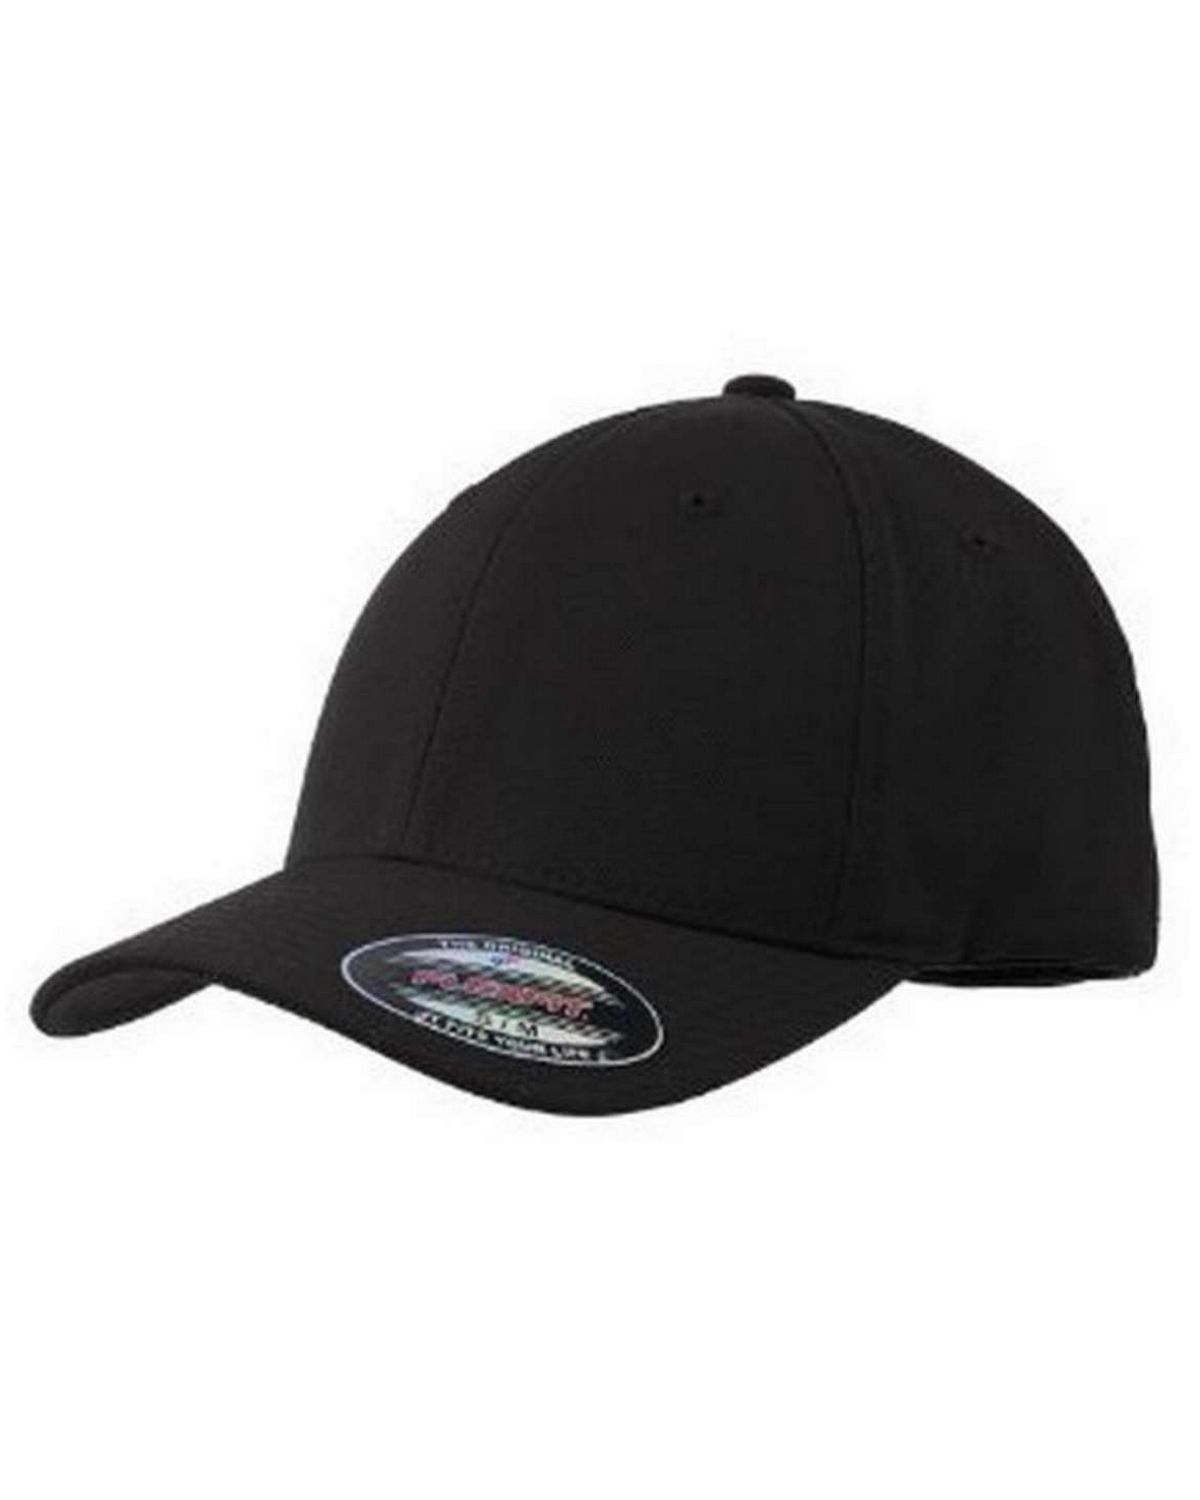 Sport-Tek STC17 Flexfit Performance Solid Cap